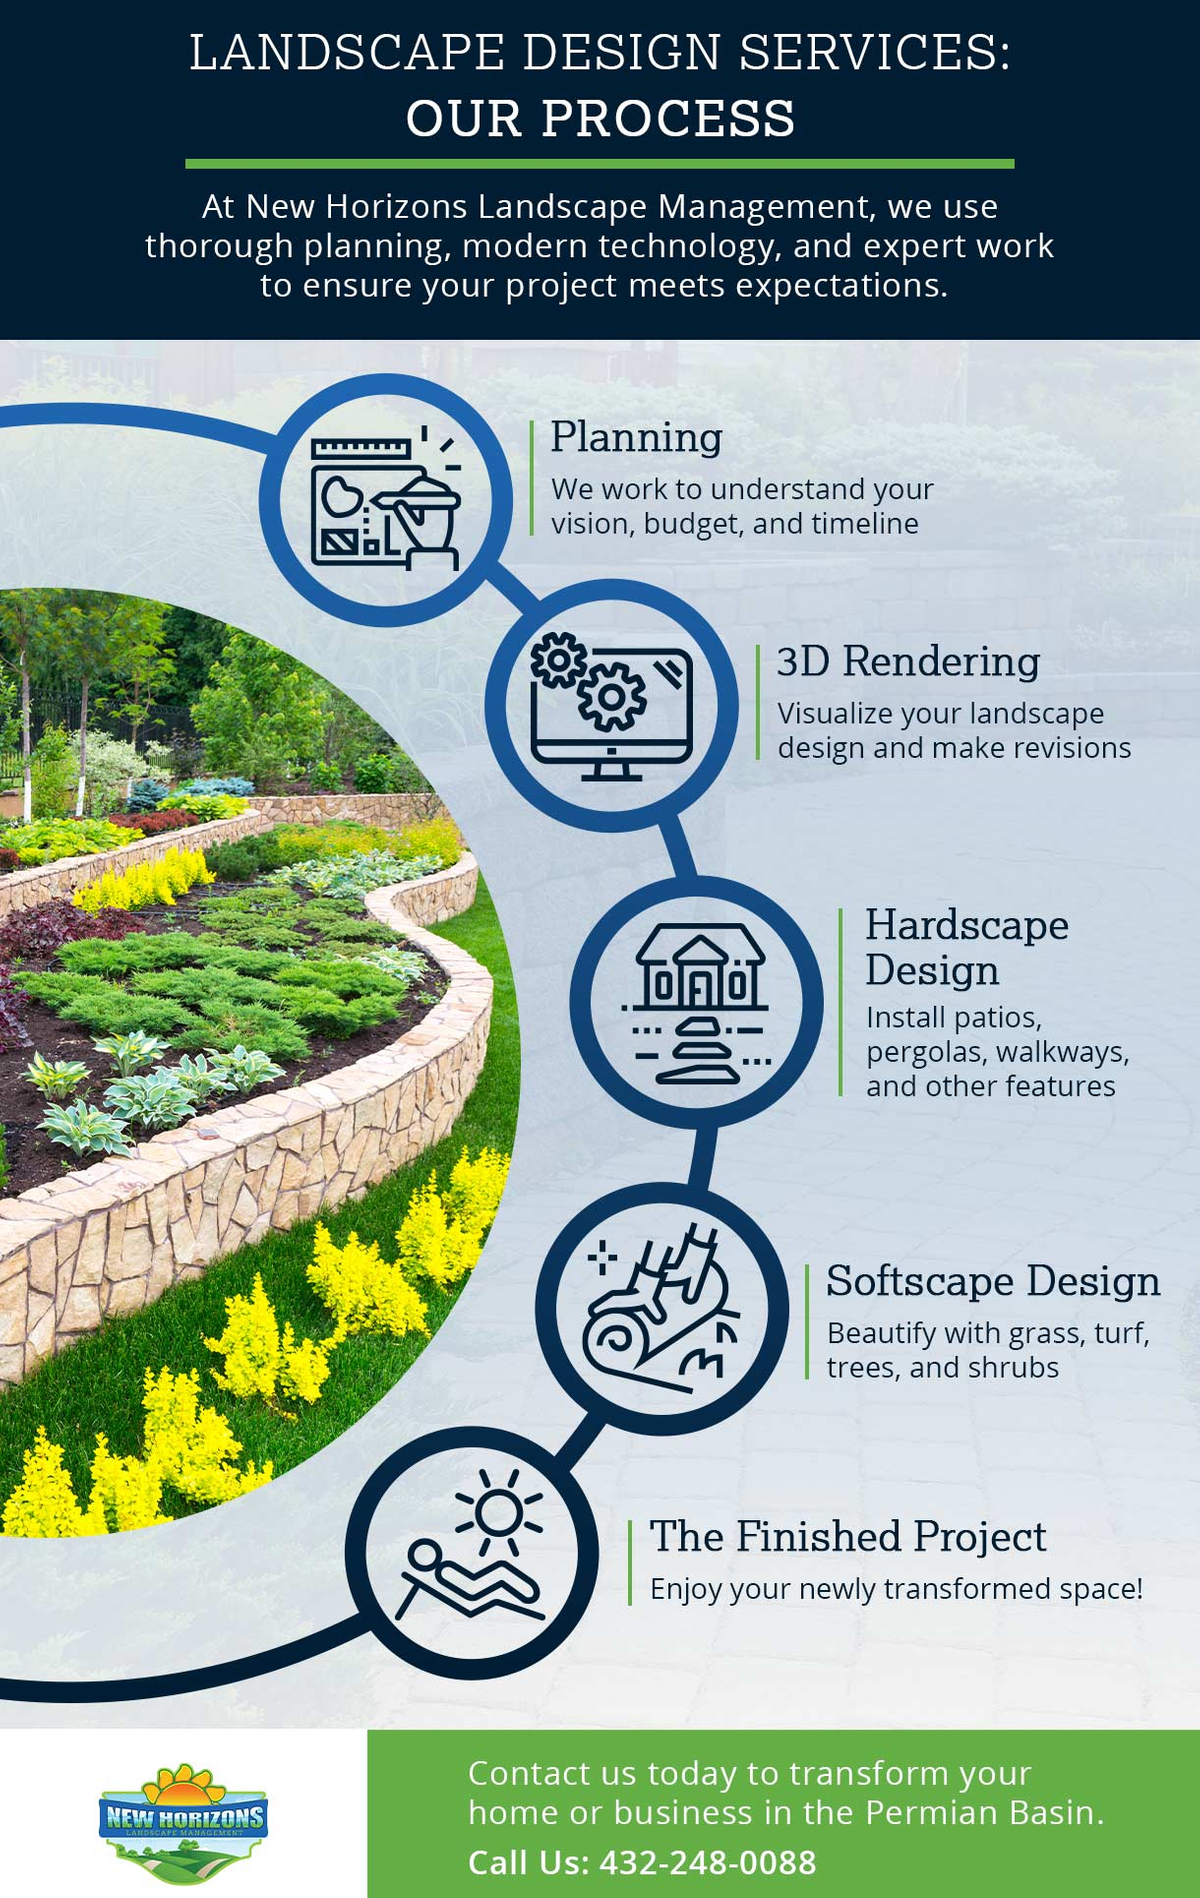 Landscape Design Services Our Process Infpgraphic.jpg